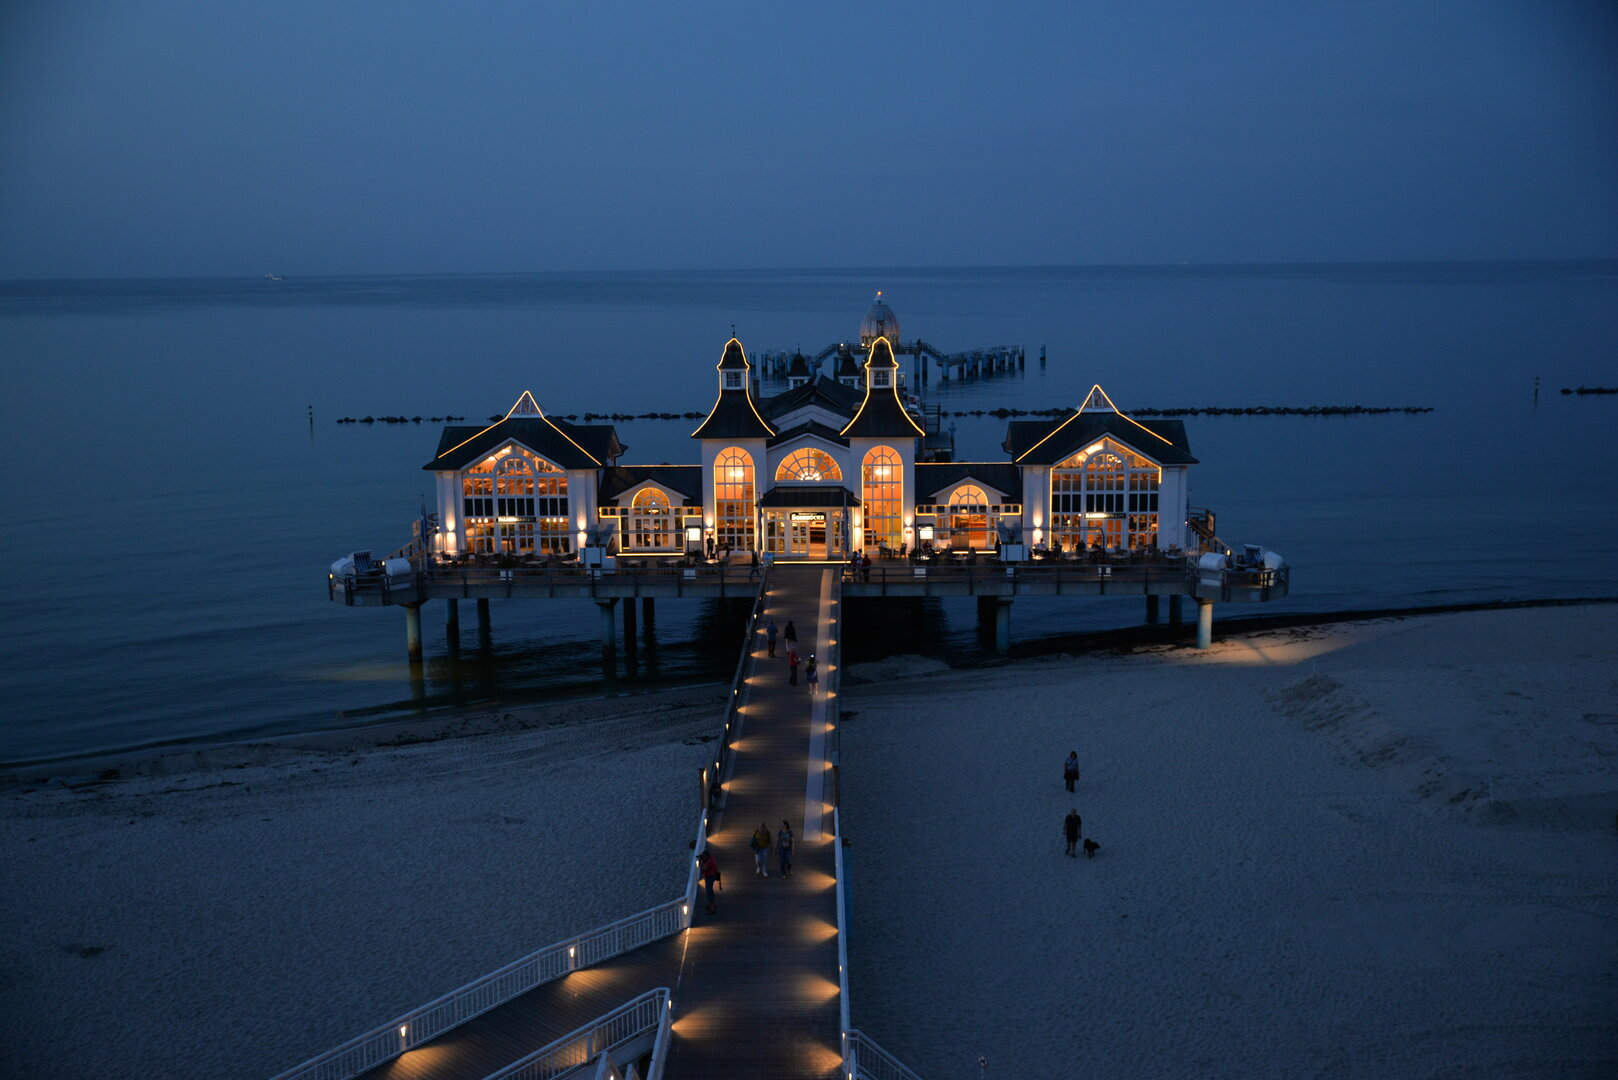 Sellin's pier at night